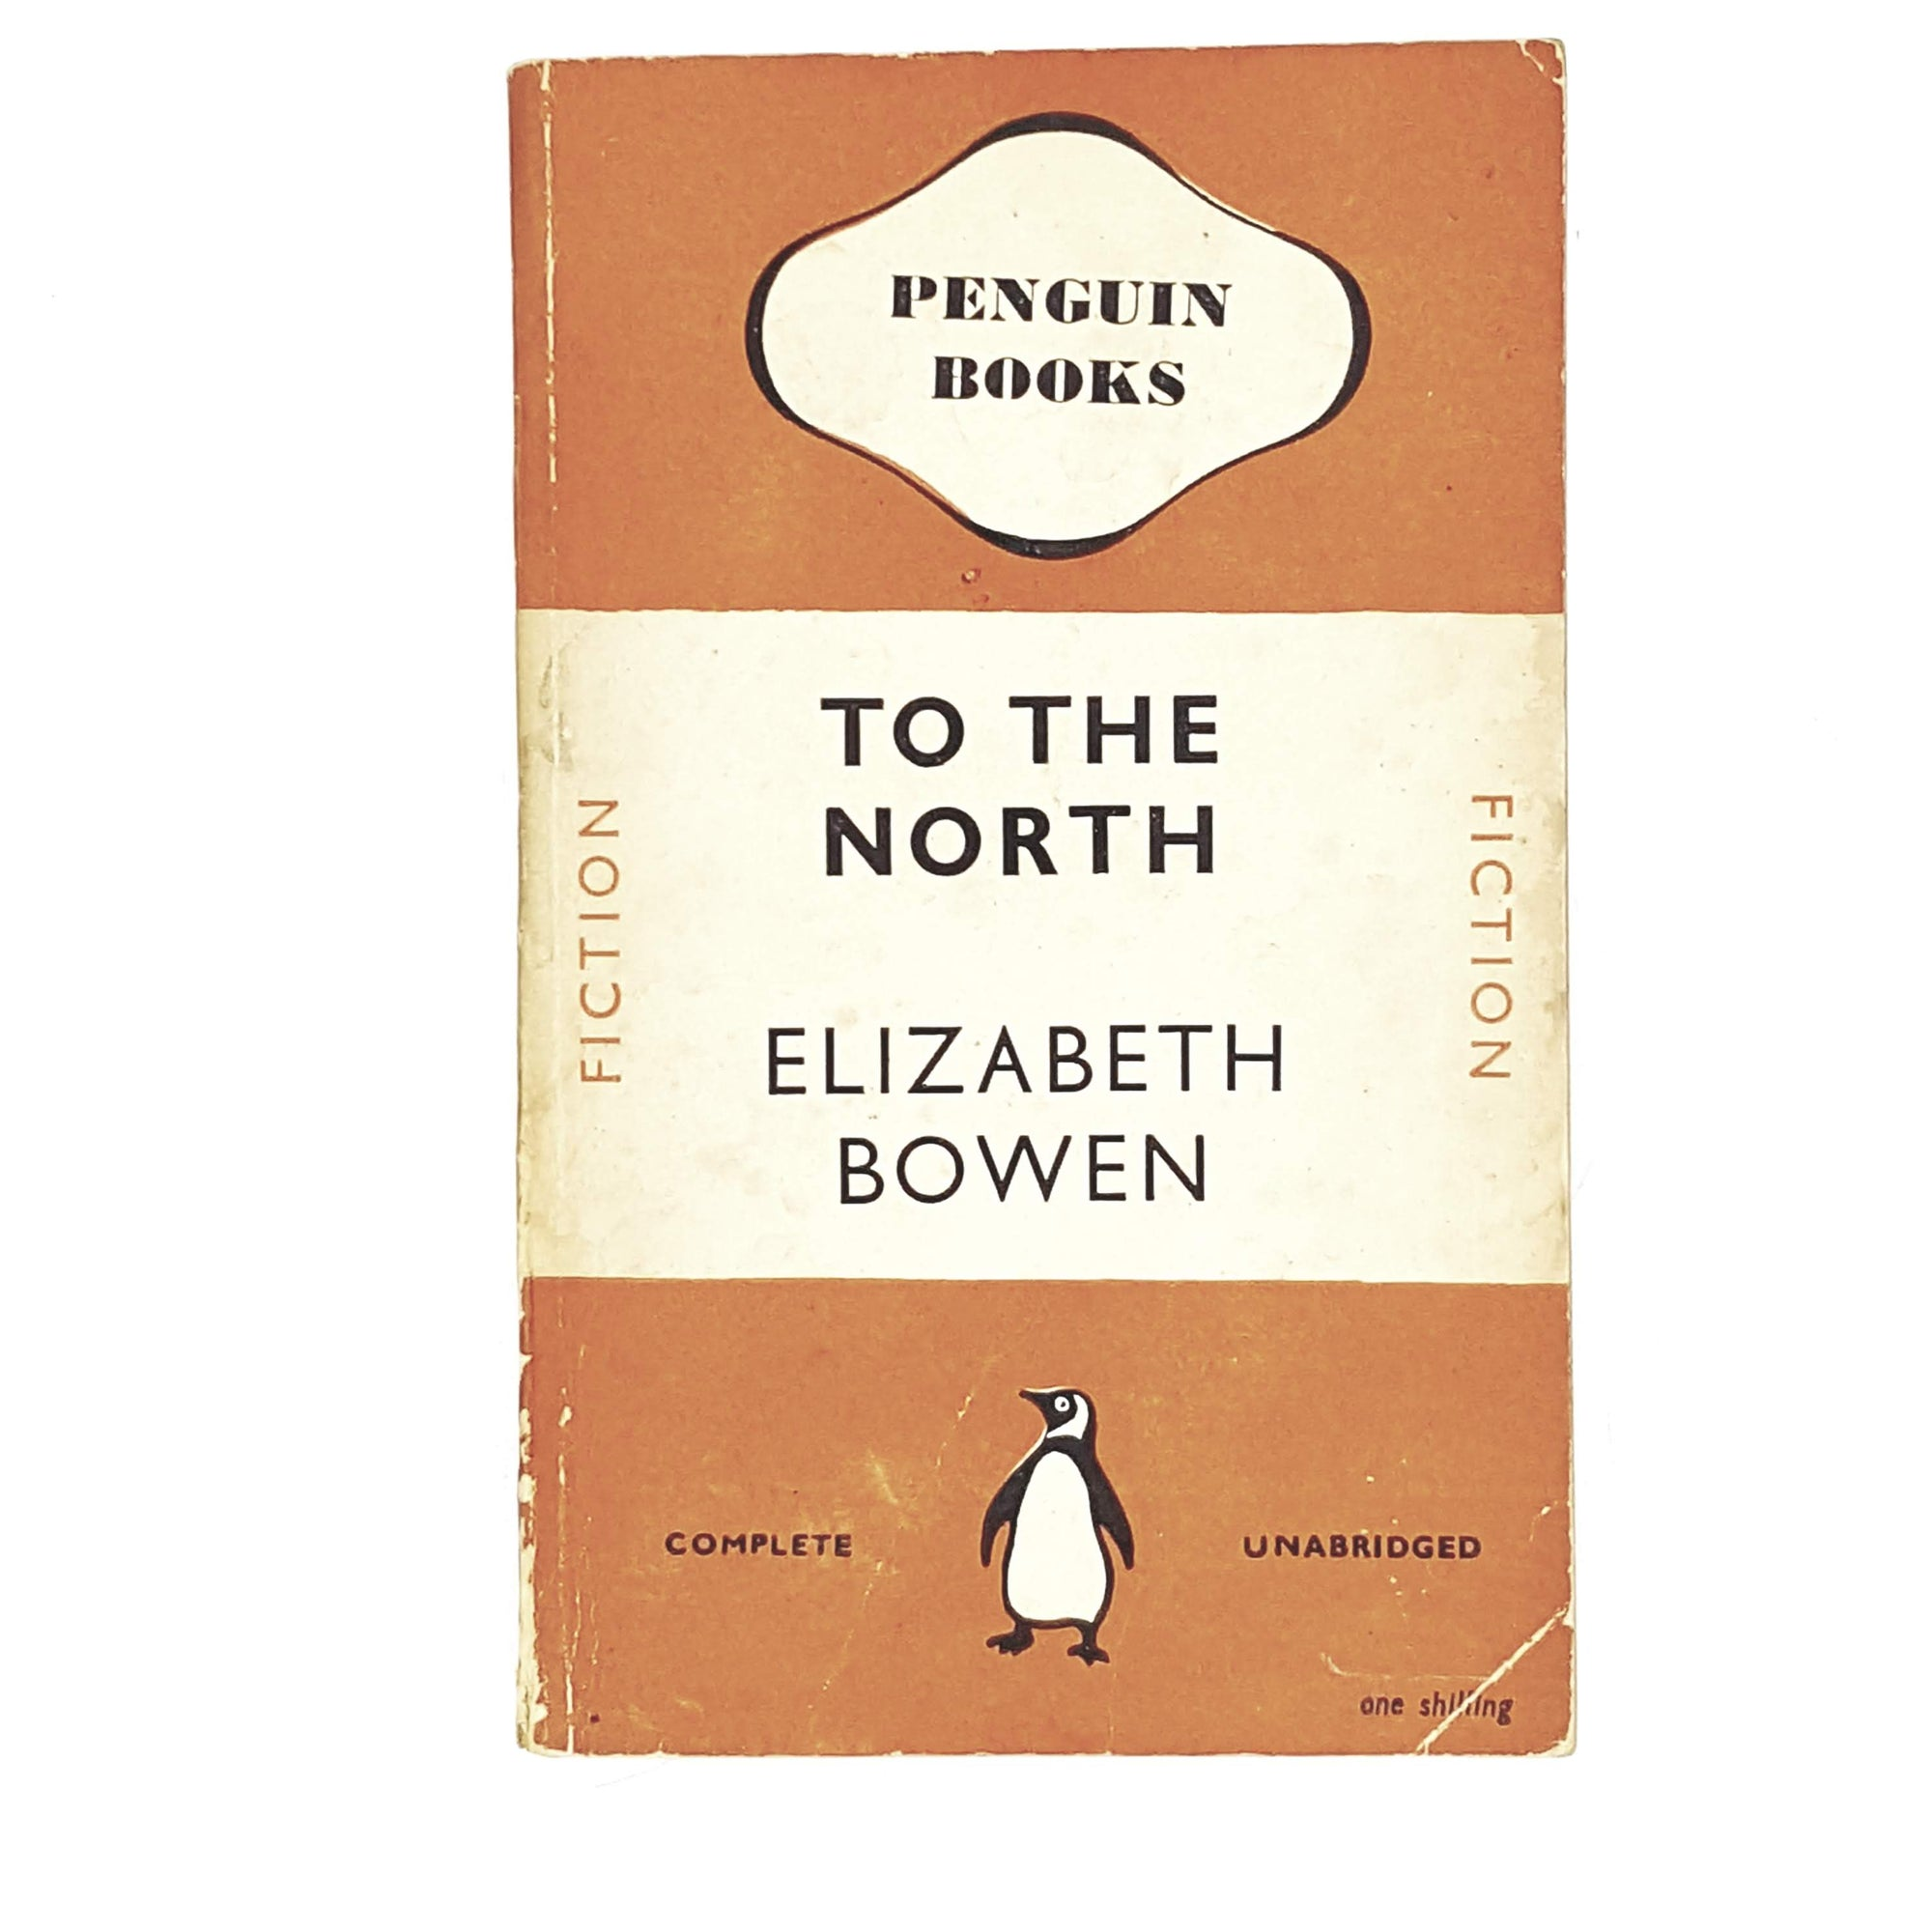 To the North by Elizabeth Bowen 1945